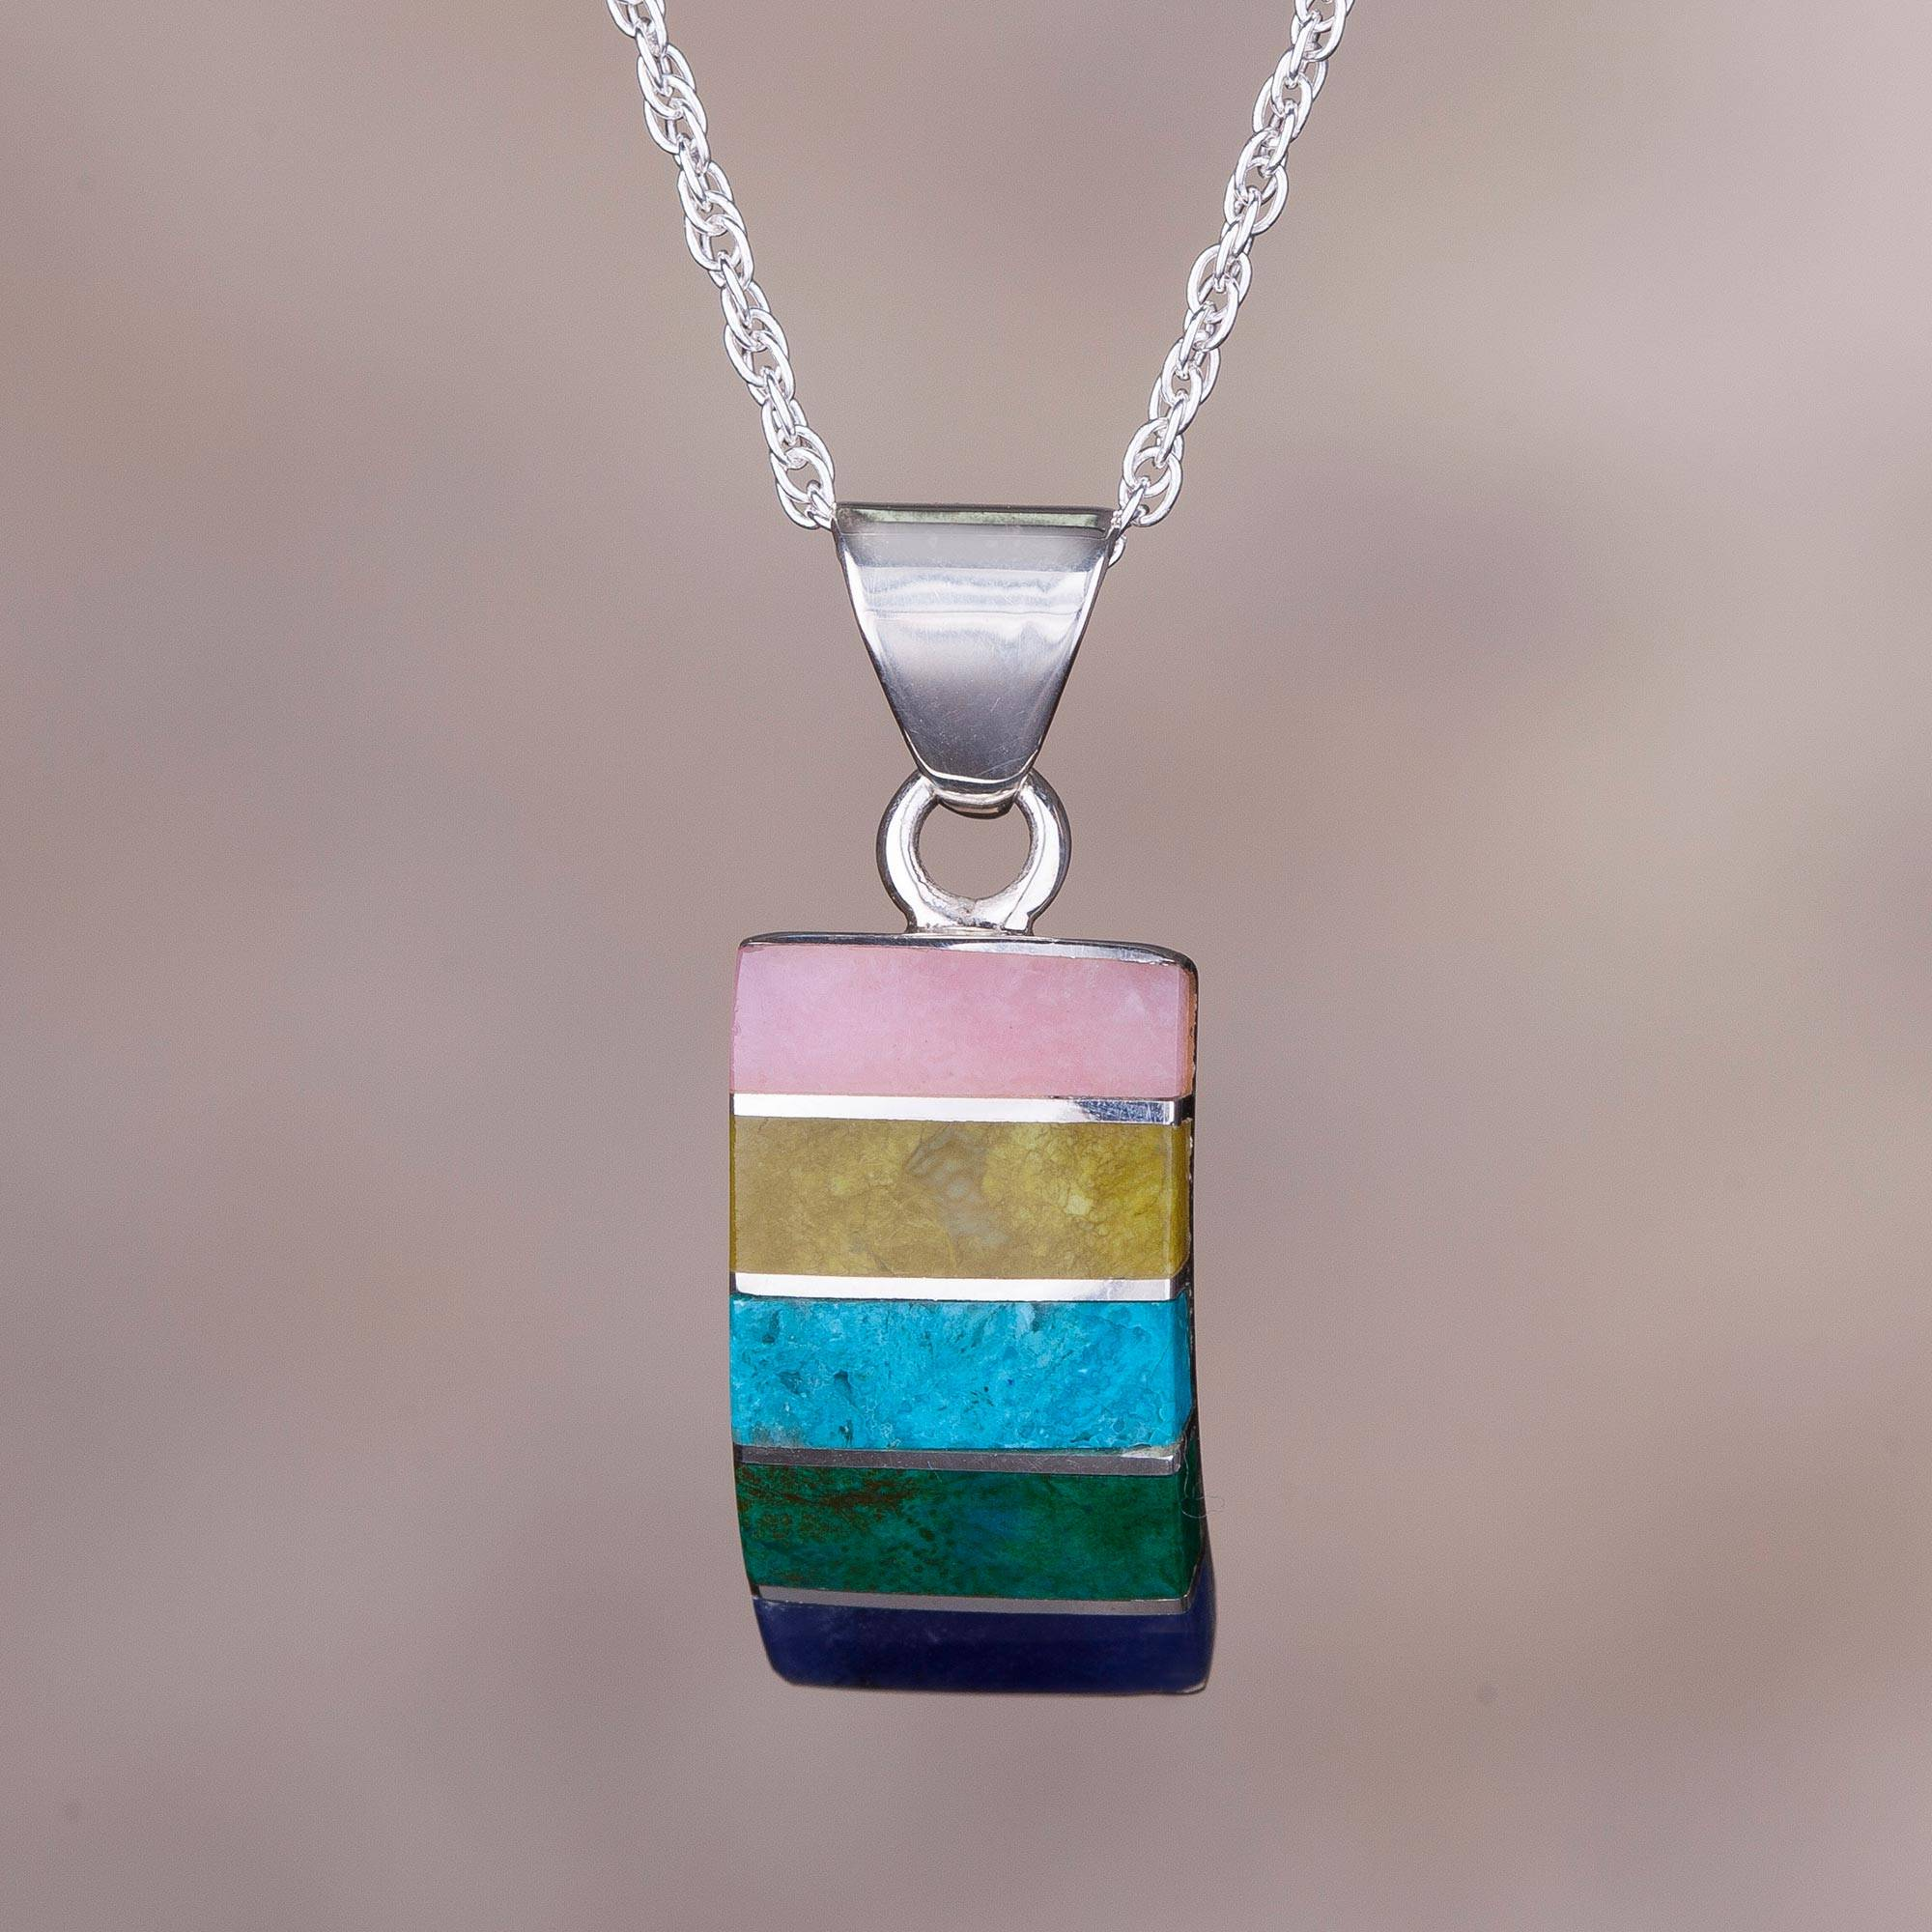 Oceanic Colors Colorful Multi-Gemstone Pendant Necklace from Peru chrysocolla and sodalite Rose quartz serpentine Sterling silver The Perfect Necklace